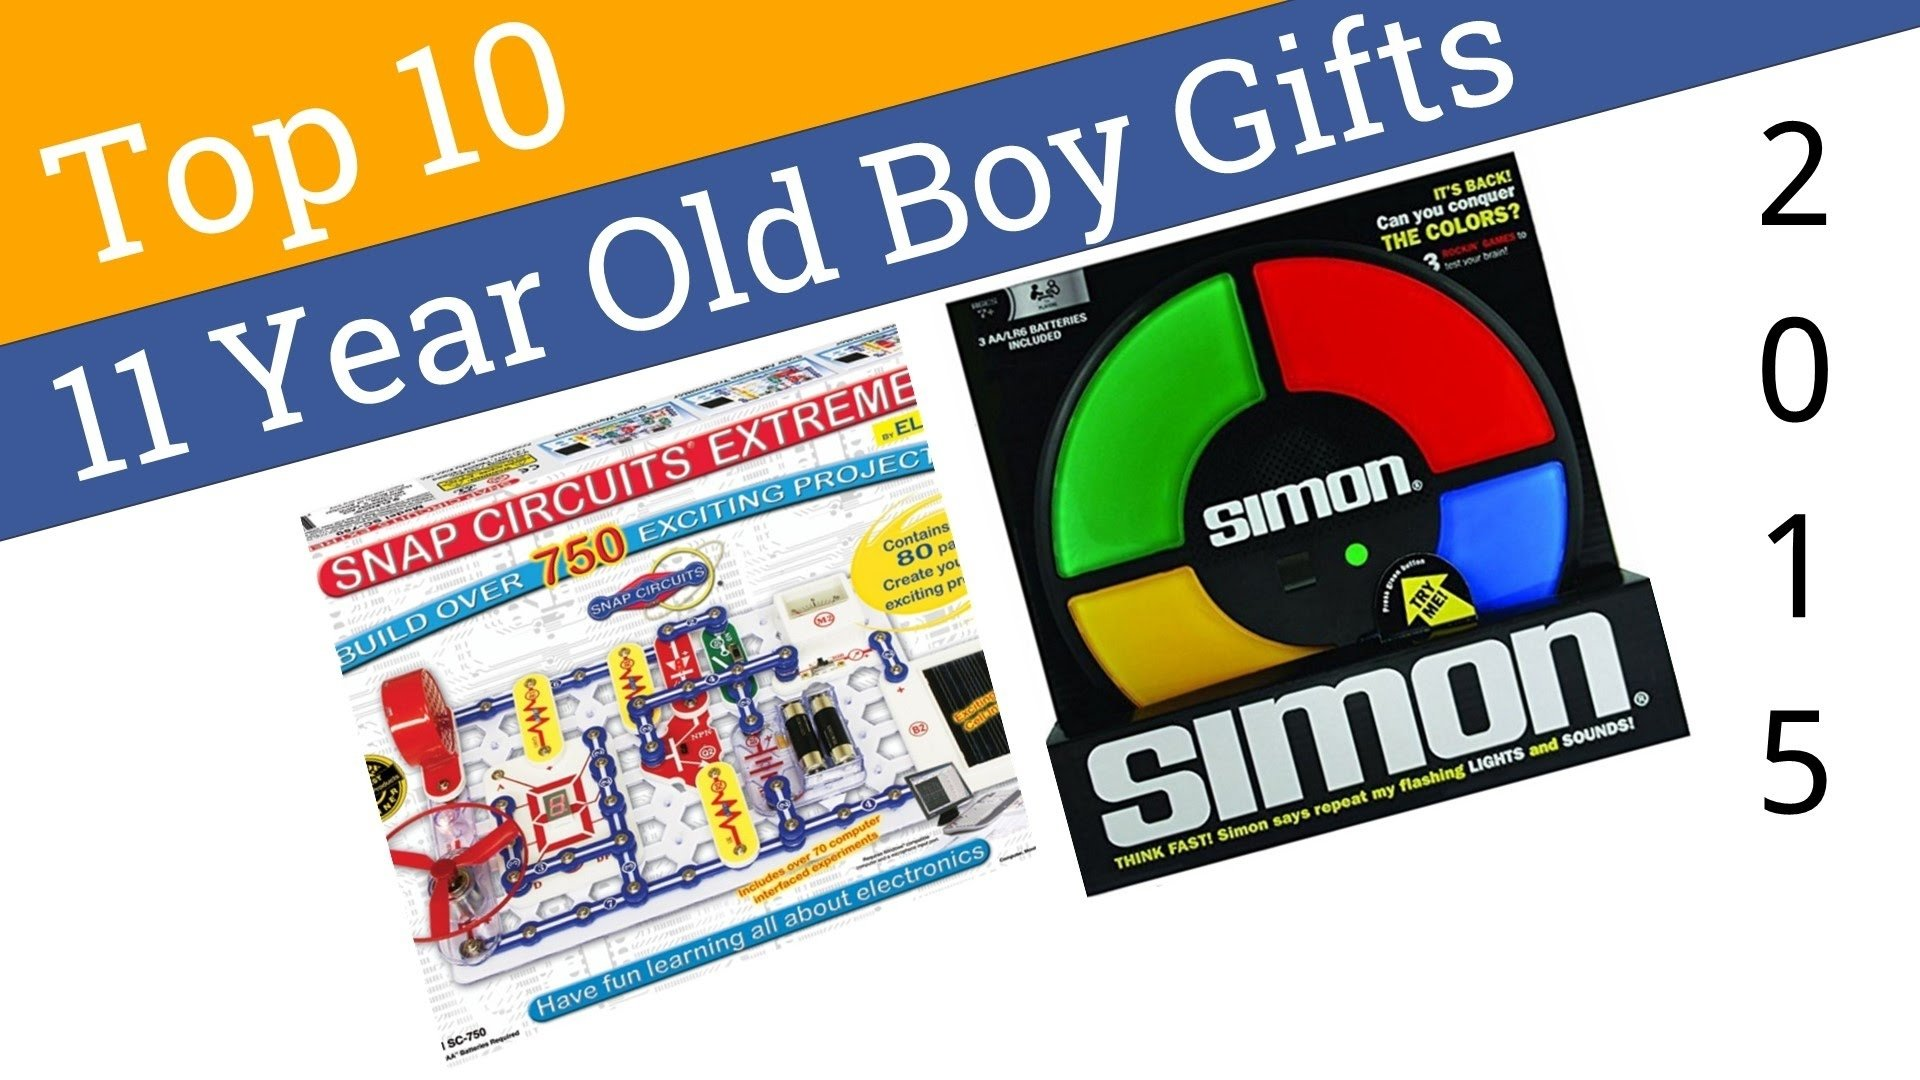 10 Ideal Christmas Ideas For 10 Year Old Boy 10 best 11 year old boy gifts 2015 youtube 13 2021